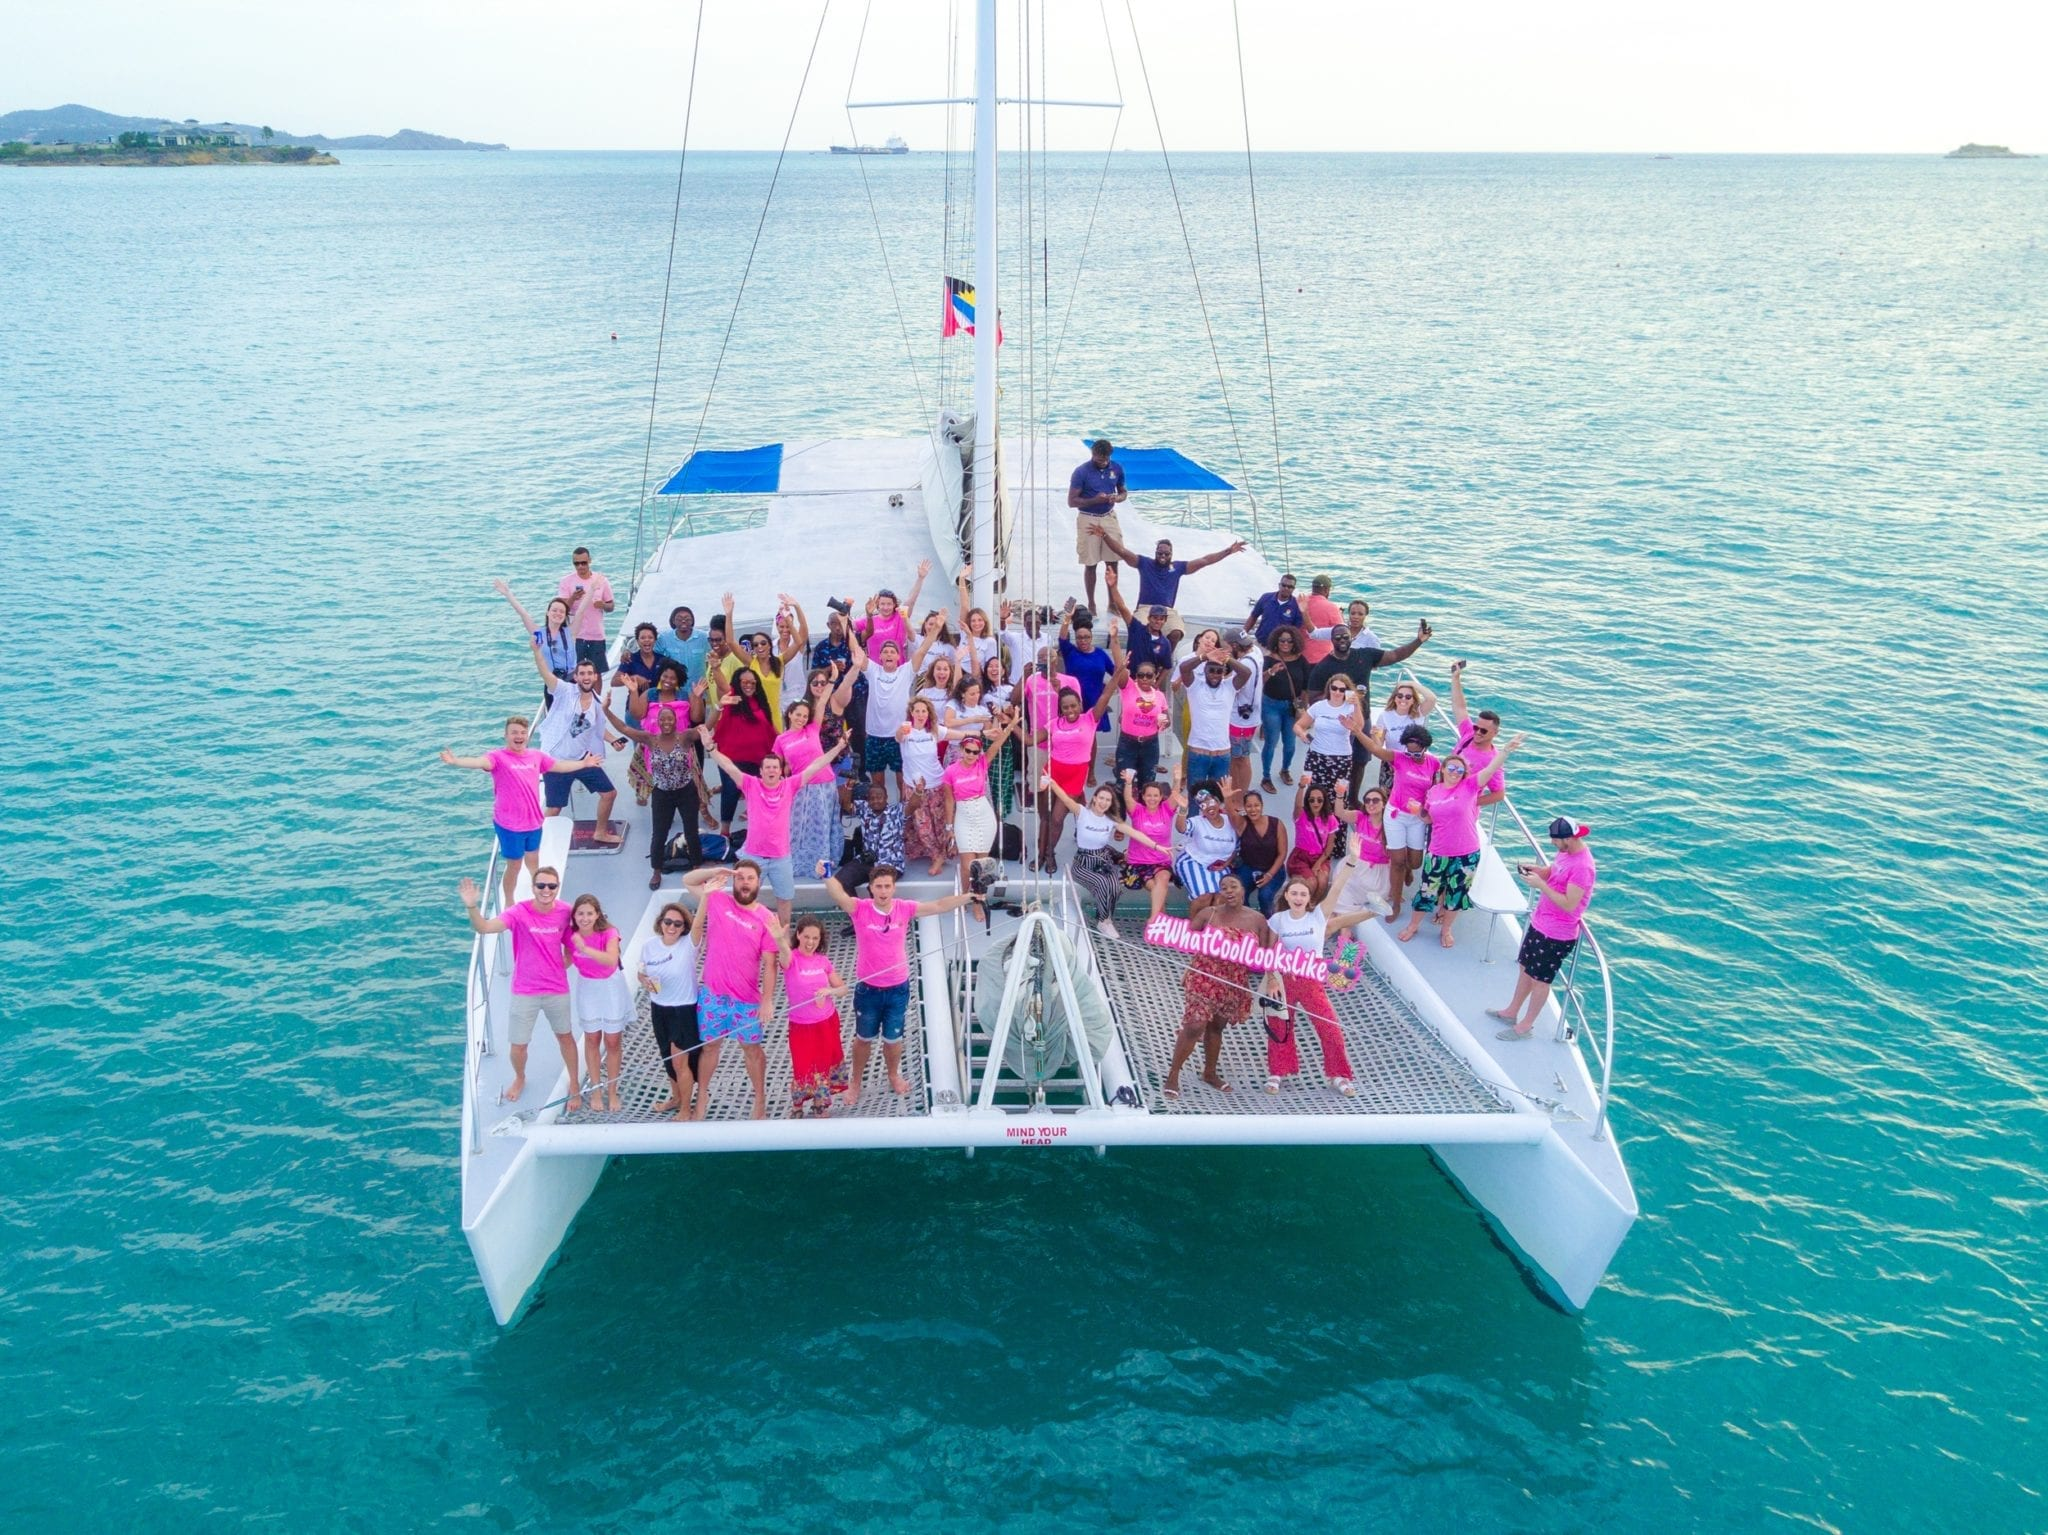 In a drone shot, a few dozen people, some wearing bright pink t-shirts, pose with their arms in the air on a large catamaran in Antigua. The sea surrounding them is turquoise.